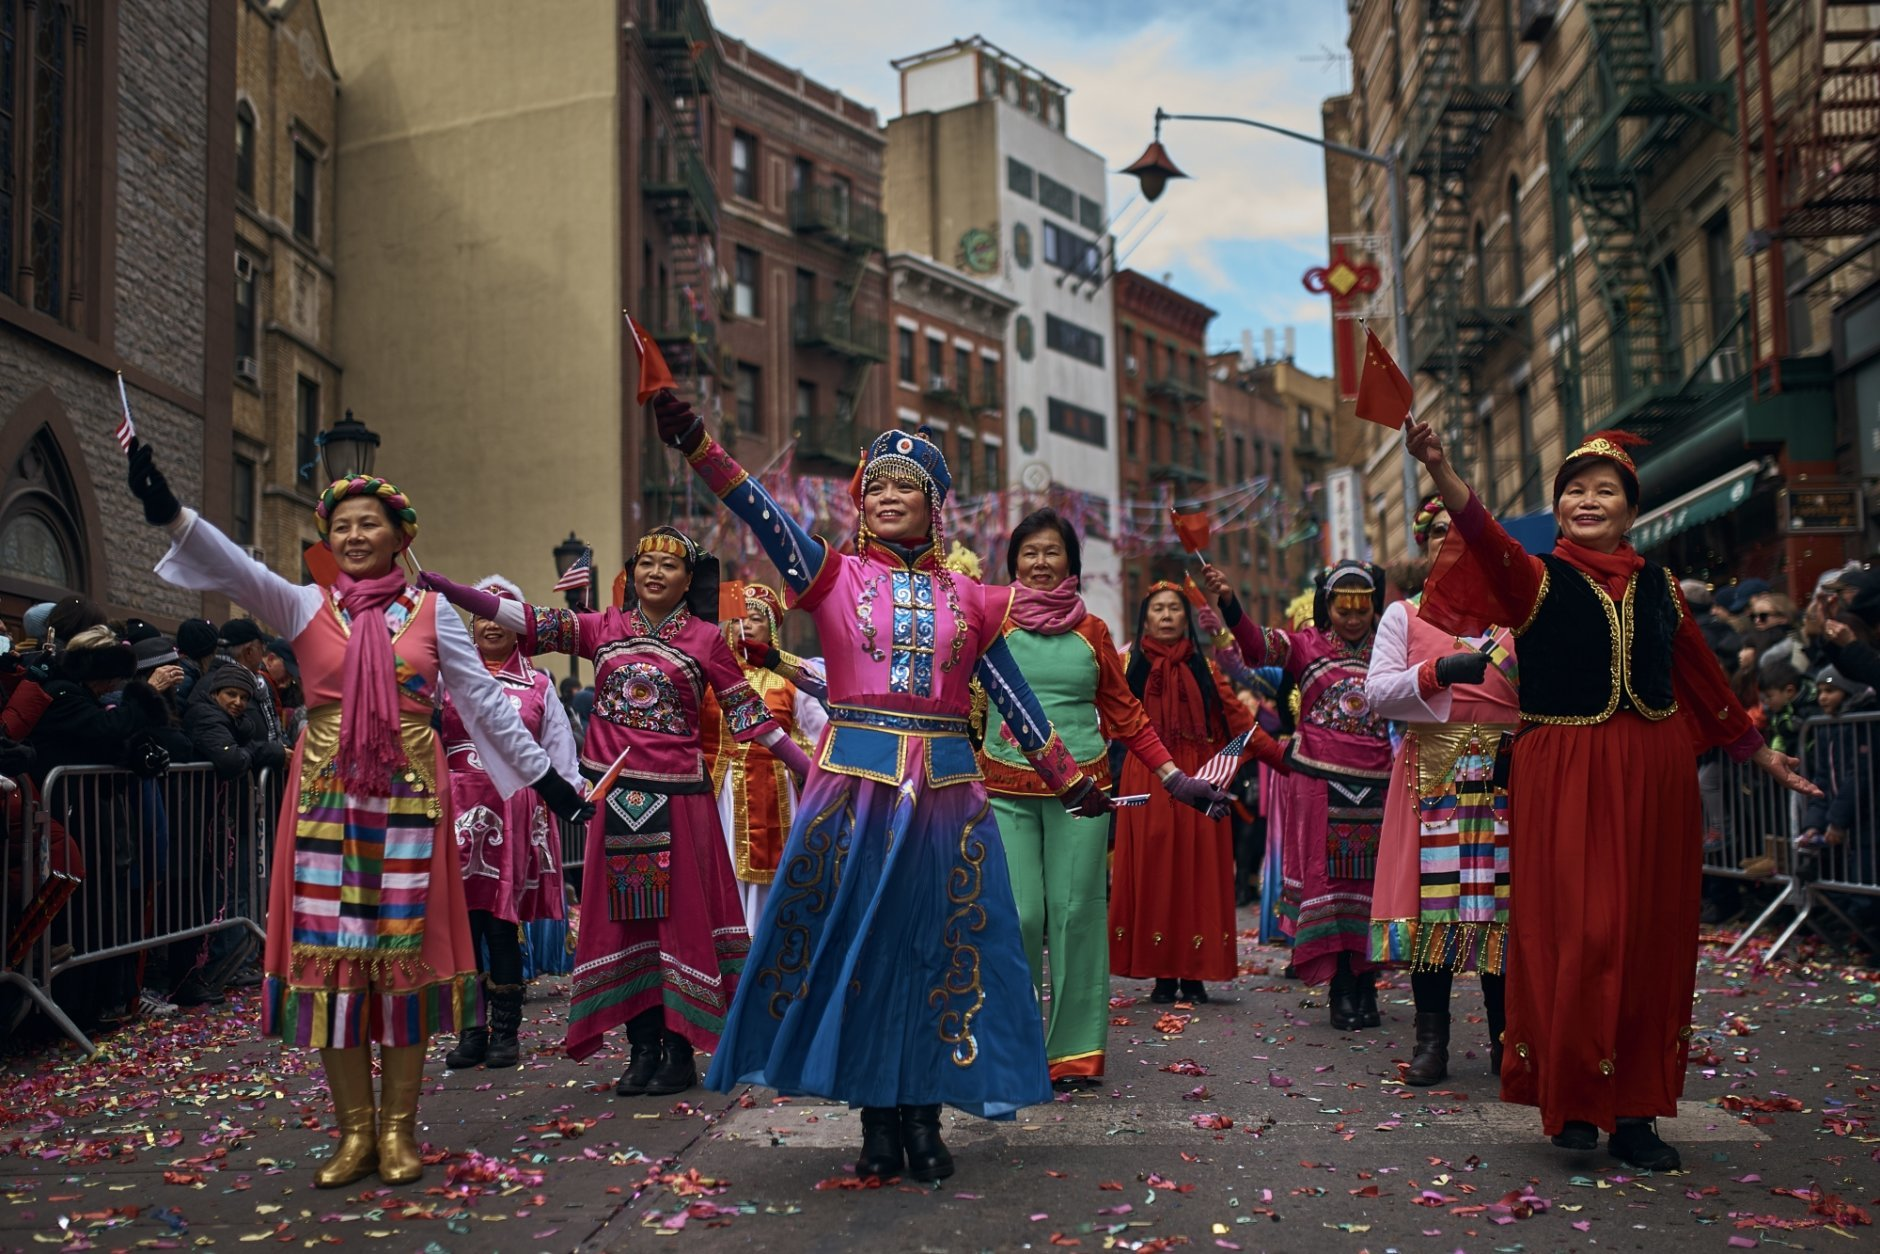 Dancers perform during the Chinese Lunar New Year parade in Chinatown in New York, Sunday, Feb. 17, 2019. (AP Photo/Andres Kudacki)